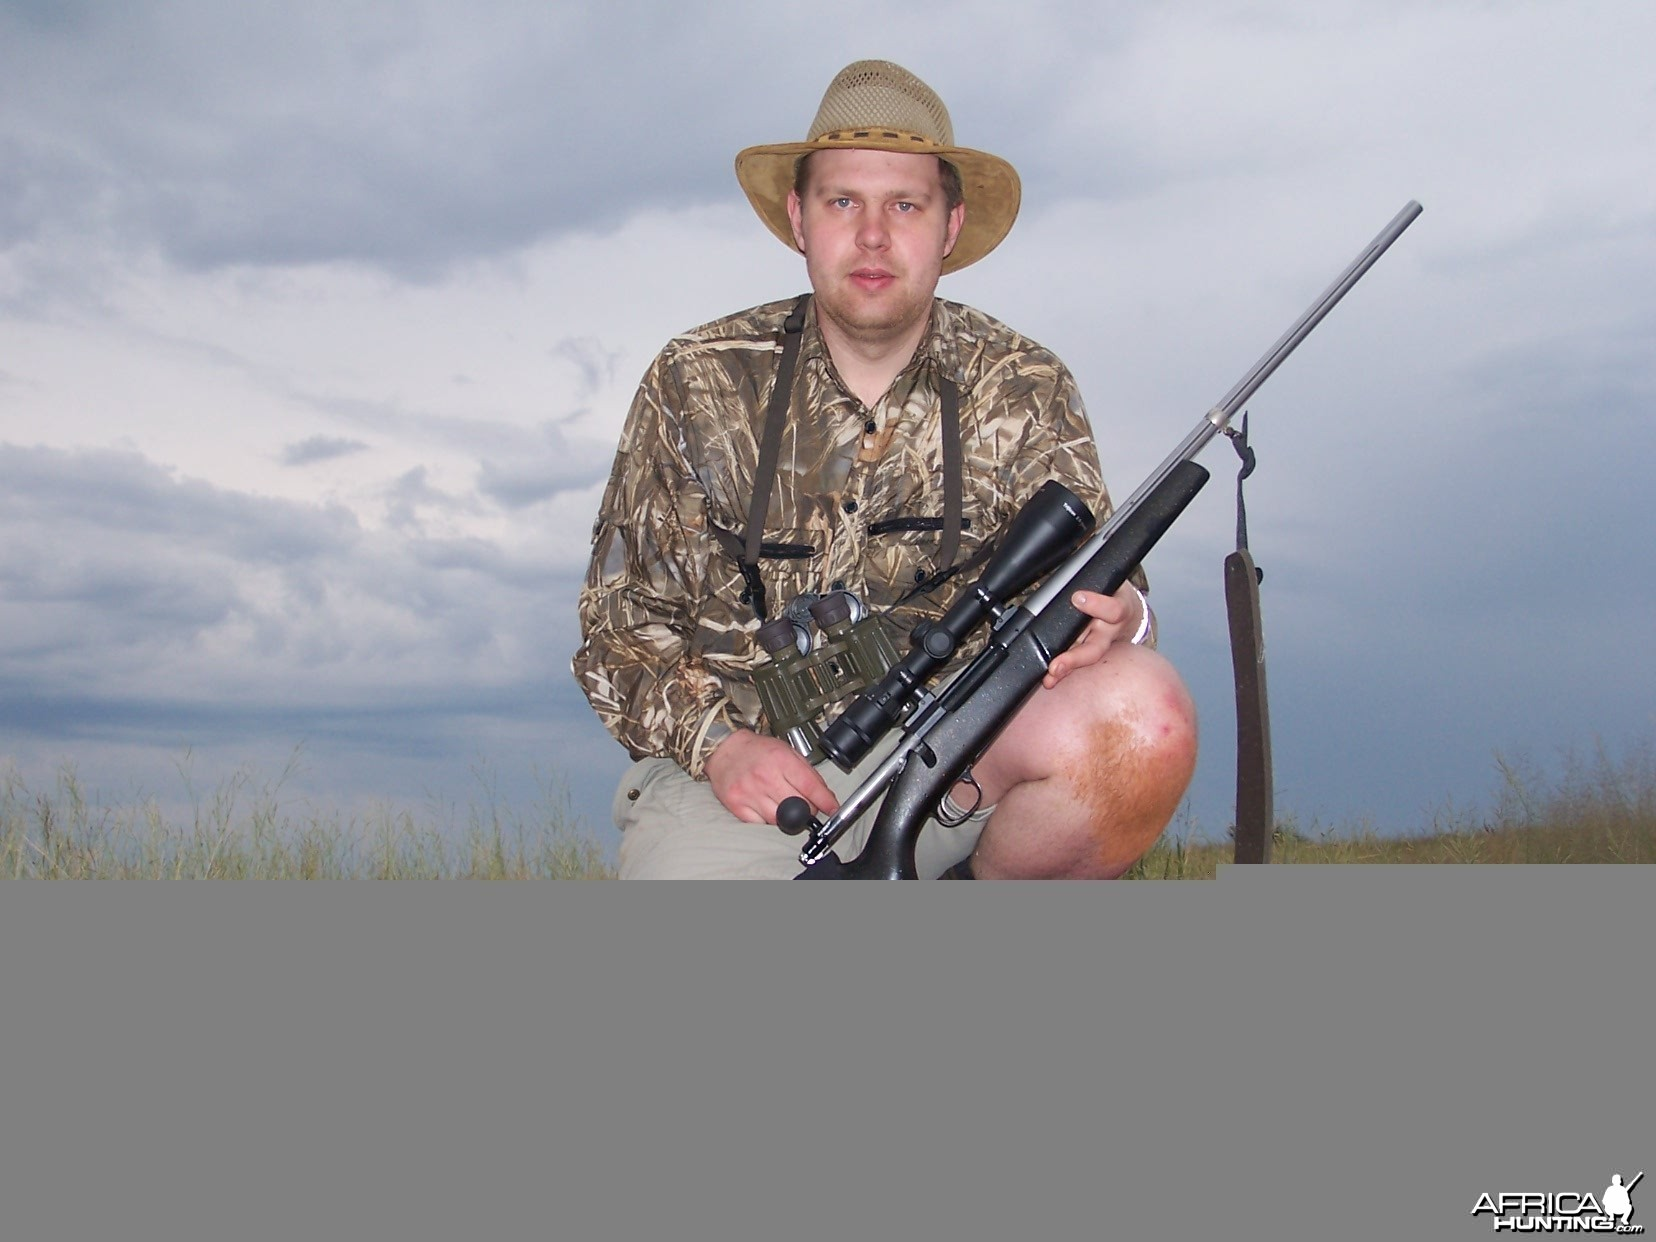 Hunting Jackal Kimberley South Africa